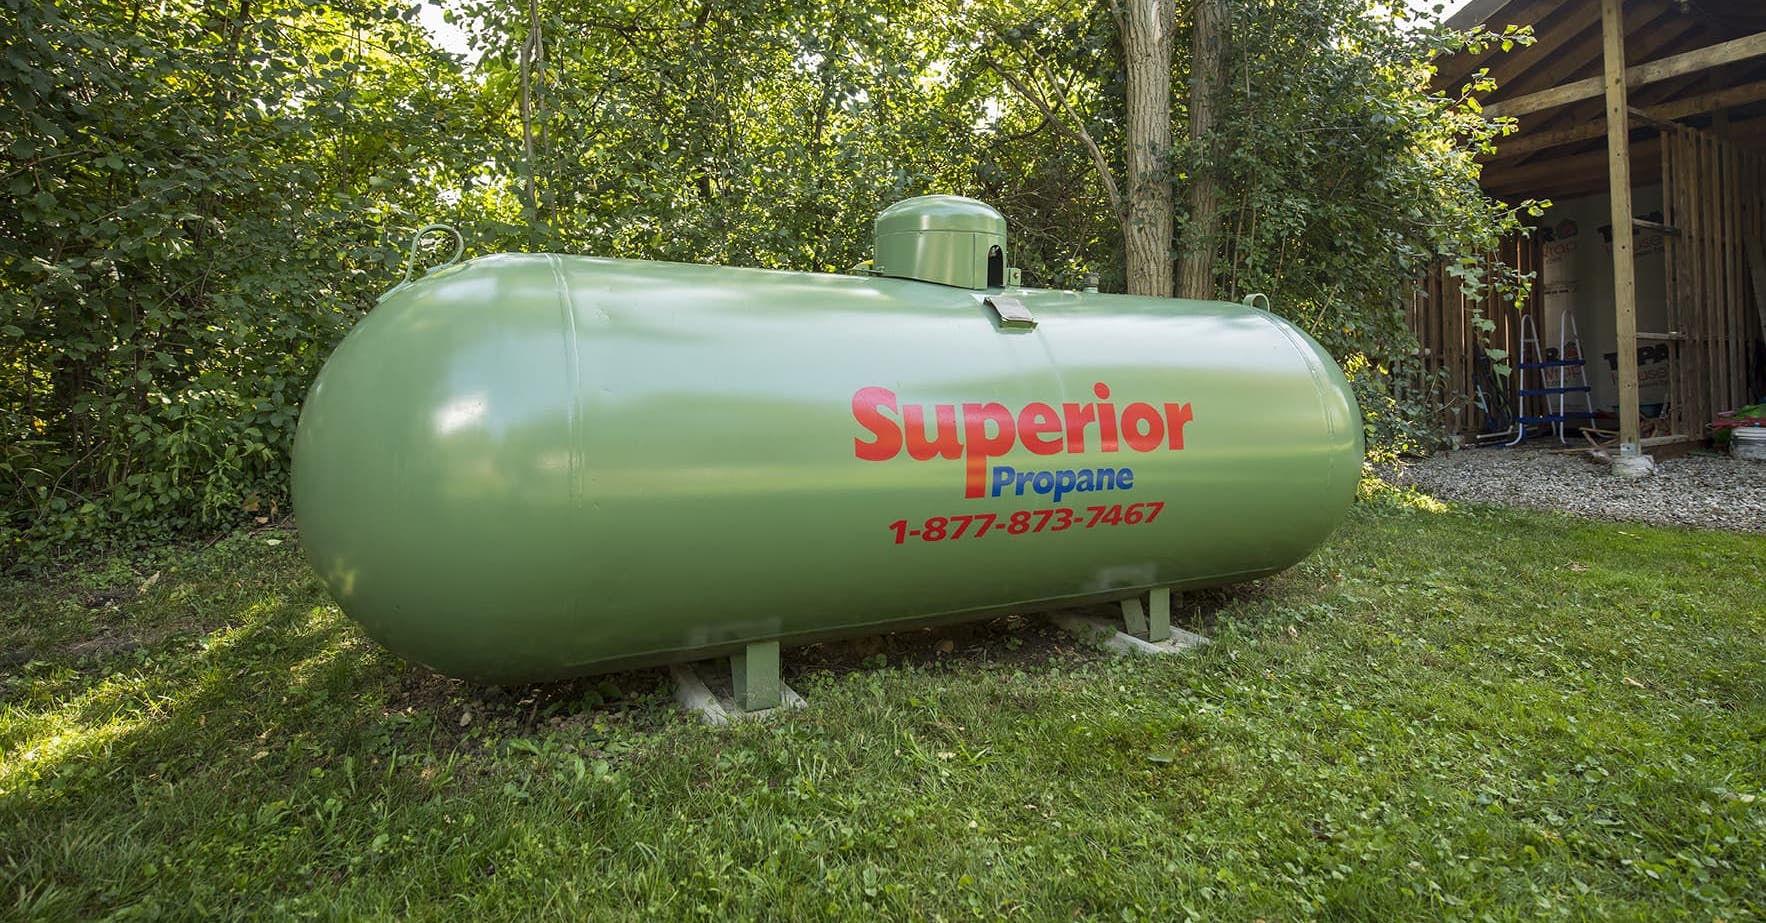 Superior Propane tank next to a shed in a residential backyard.